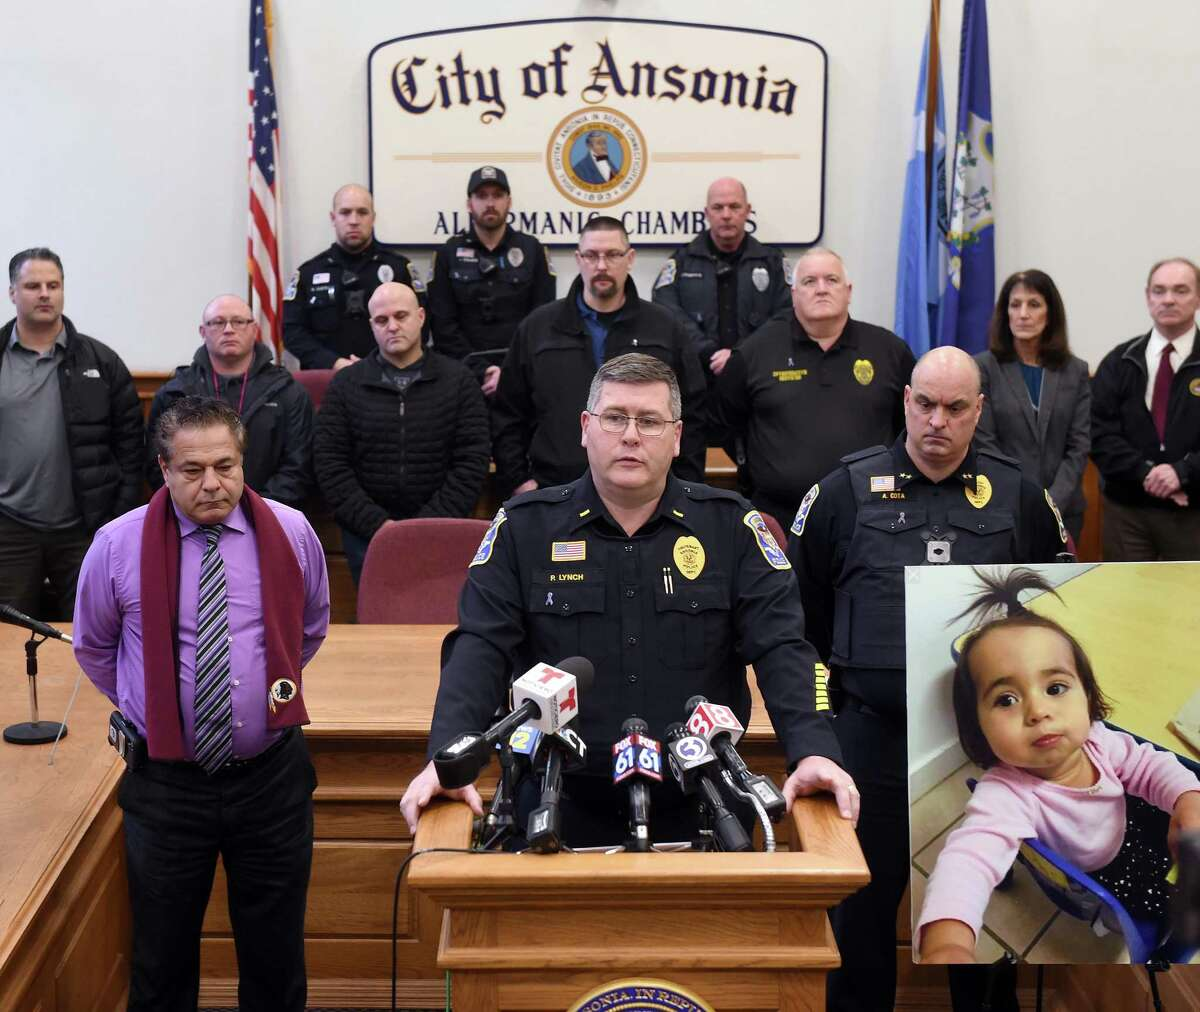 Ansonia Police Department Lt. Patrick Lynch speaks at a news conference at Ansonia City Hall on Friday announcing charges of murder and tampering with evidence against Jose Morales related to the homicide of Christine Holloway. At right is a photograph of Holloway's missing 1-year-old daughter, Vanessa Morales.